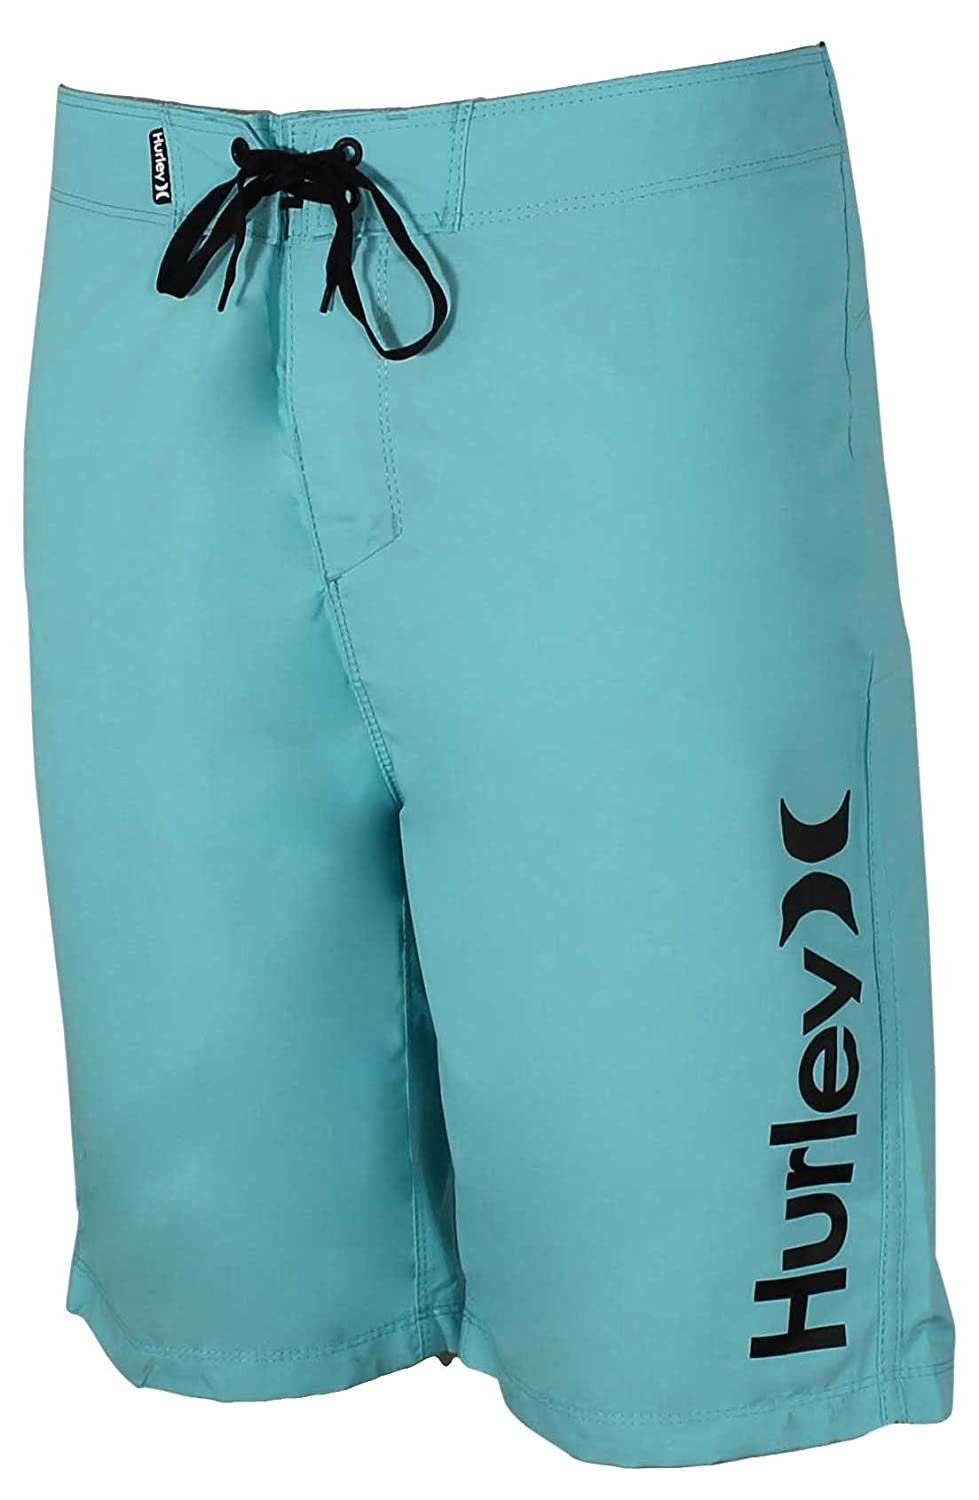 Hurley - Mens One And Only 2 Boardshorts MBS0006250